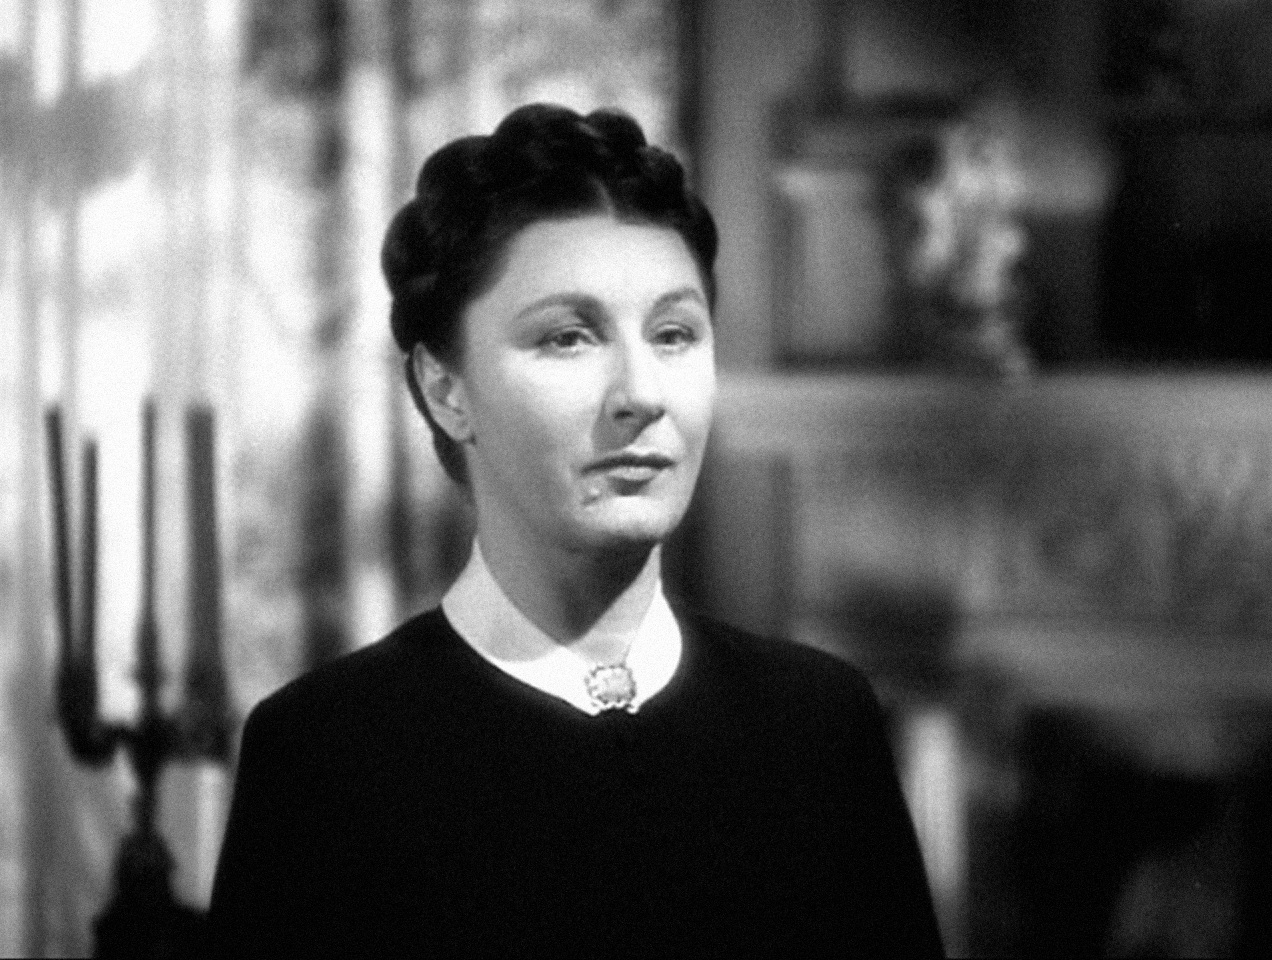 judith anderson actressjudith anderson artist, judith anderson, judith anderson star trek, judith anderson actress, judith anderson facebook, judith anderson imdb, judith anderson medea, judith anderson gallery, judith anderson psychologist, judith anderson edie falco, judith anderson therapist, judith anderson obituary, judith anderson counselor, judith anderson phd, judith anderson gay, judith anderson a man called horse, judith anderson fiu, judith anderson photography, judith anderson psychotherapist, judith anderson realtor hawaii